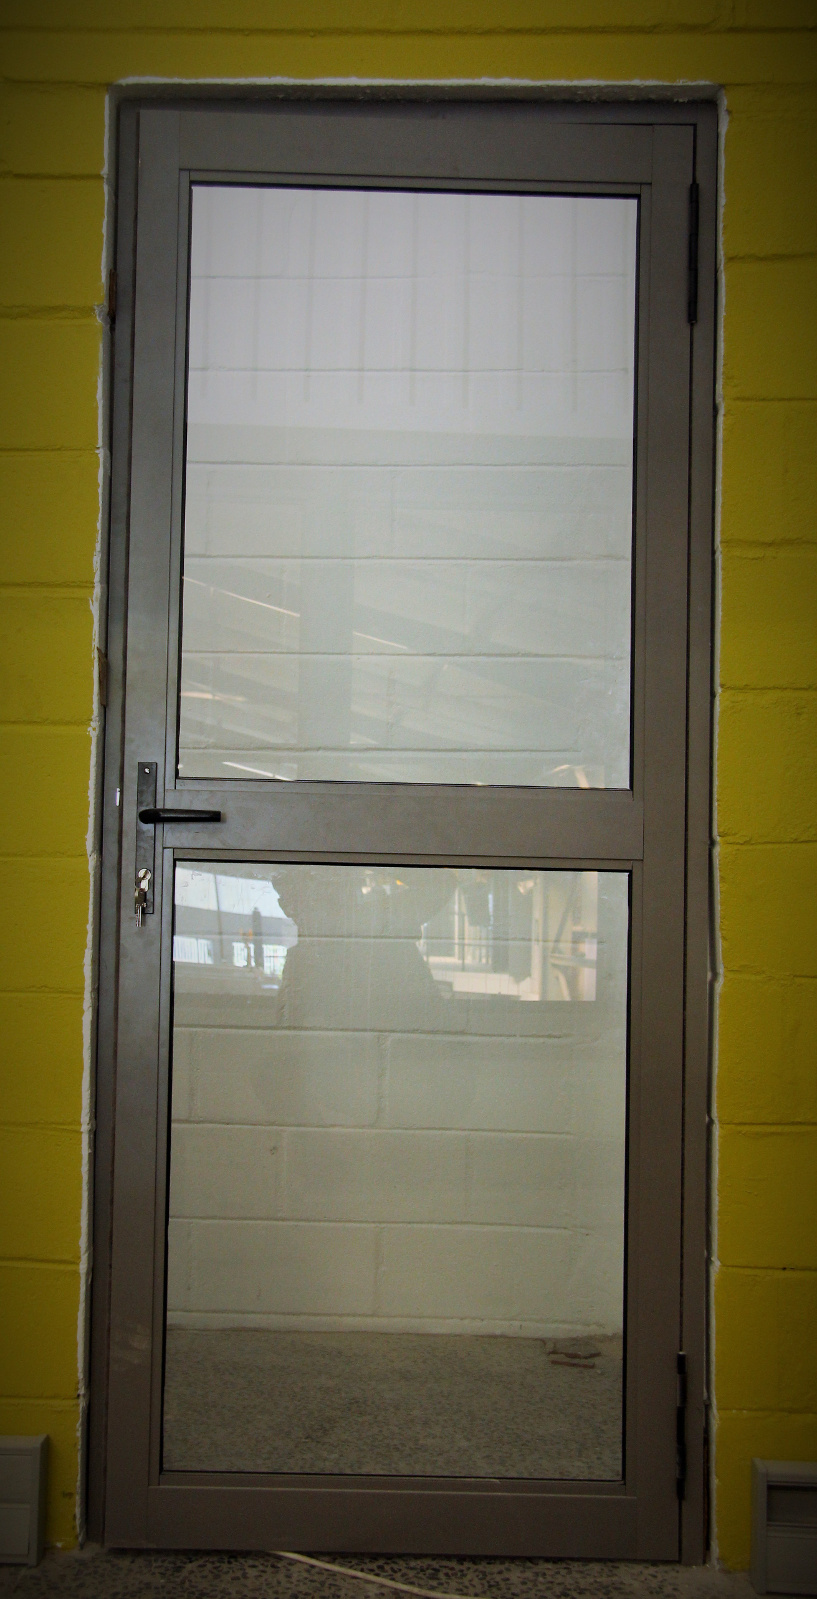 Elite commercial windows commercial aluminium windows for Commercial windows